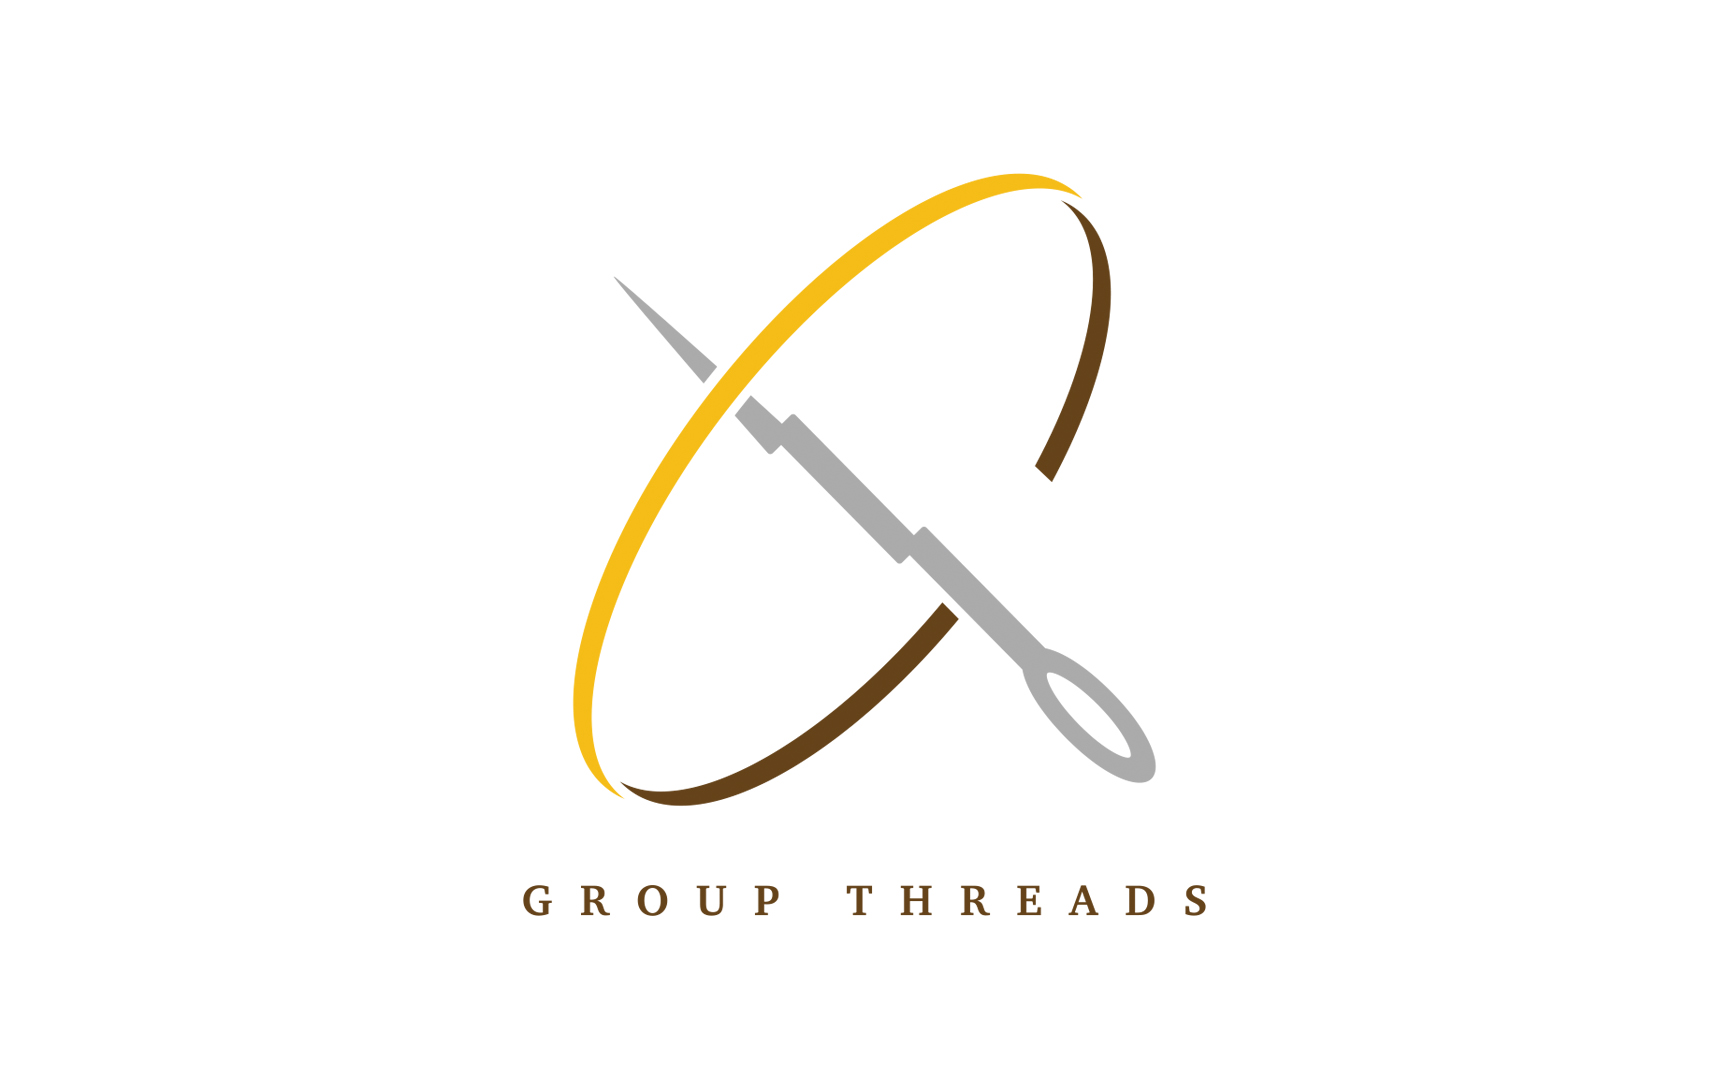 5GroupThreads